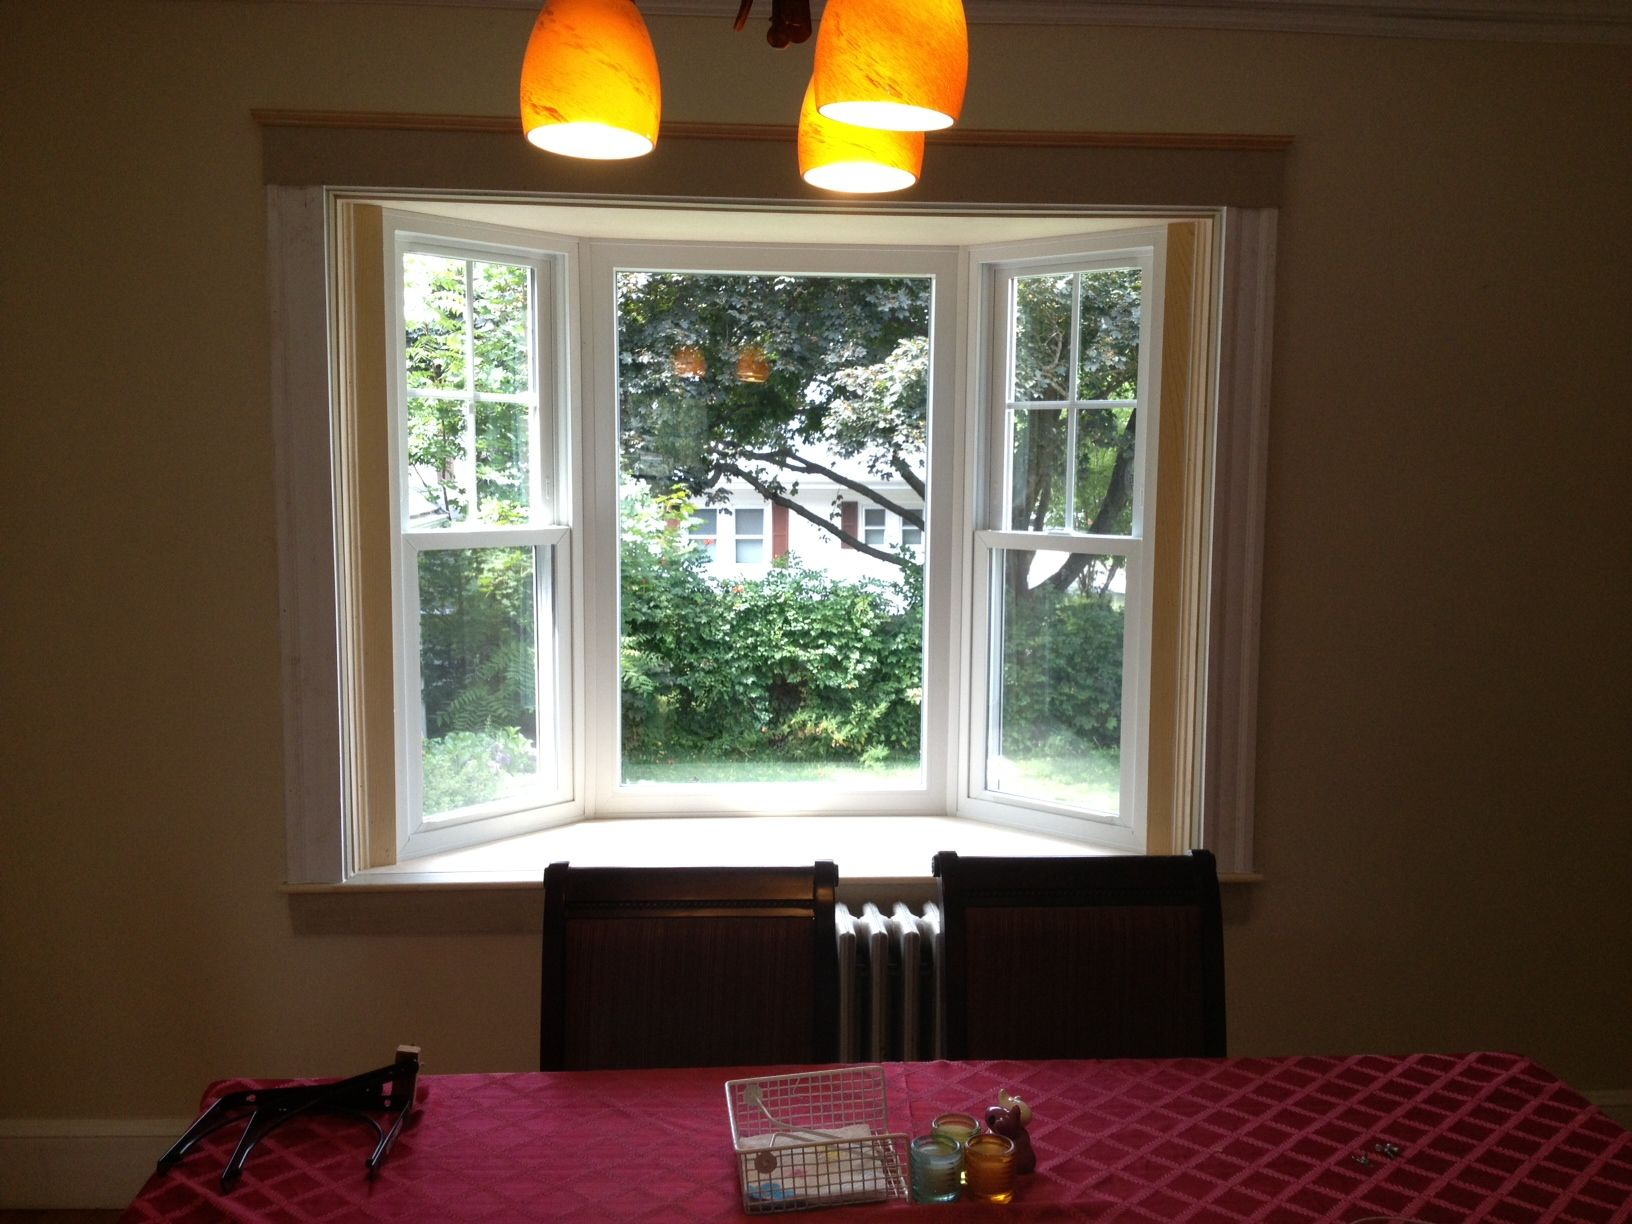 New bay window installation in waltham ma dlm remodeling for Bay window installation